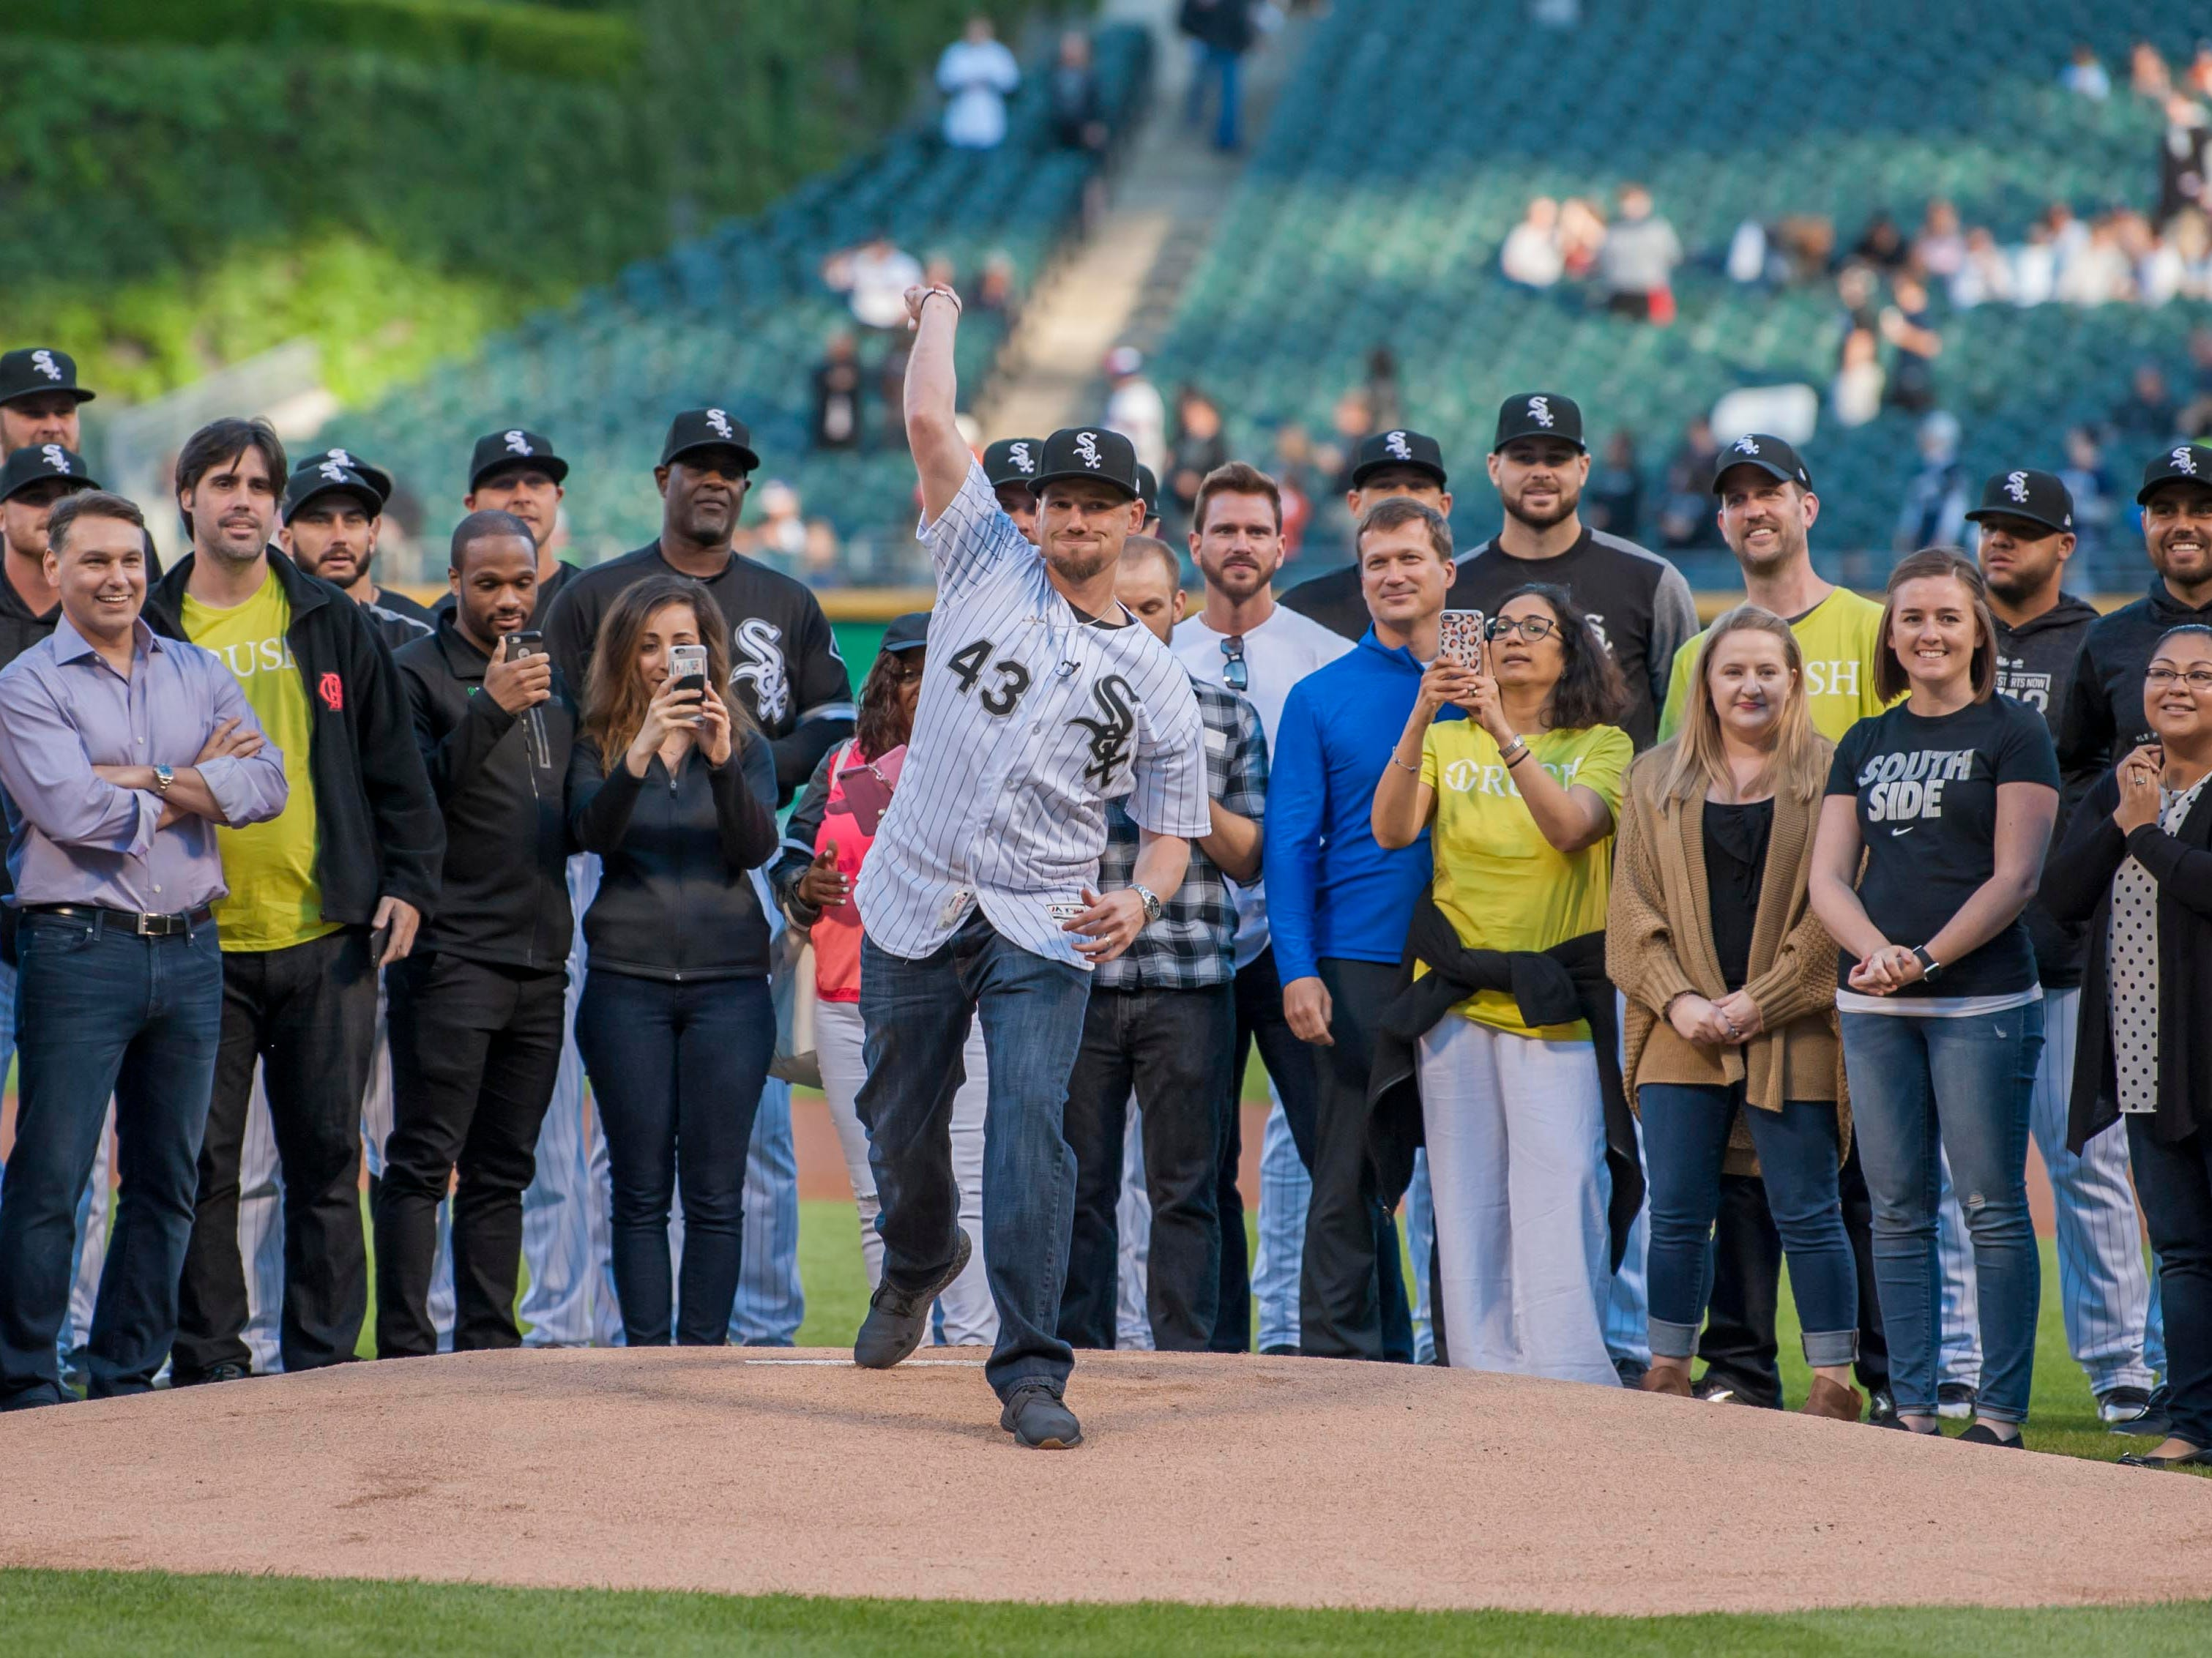 June 1: Chicago White Sox pitcher Danny Farquhar, who suffered a brain hemorrhage earlier in the season, throws out a ceremonial first pitch before a game at Guaranteed Rate Field.